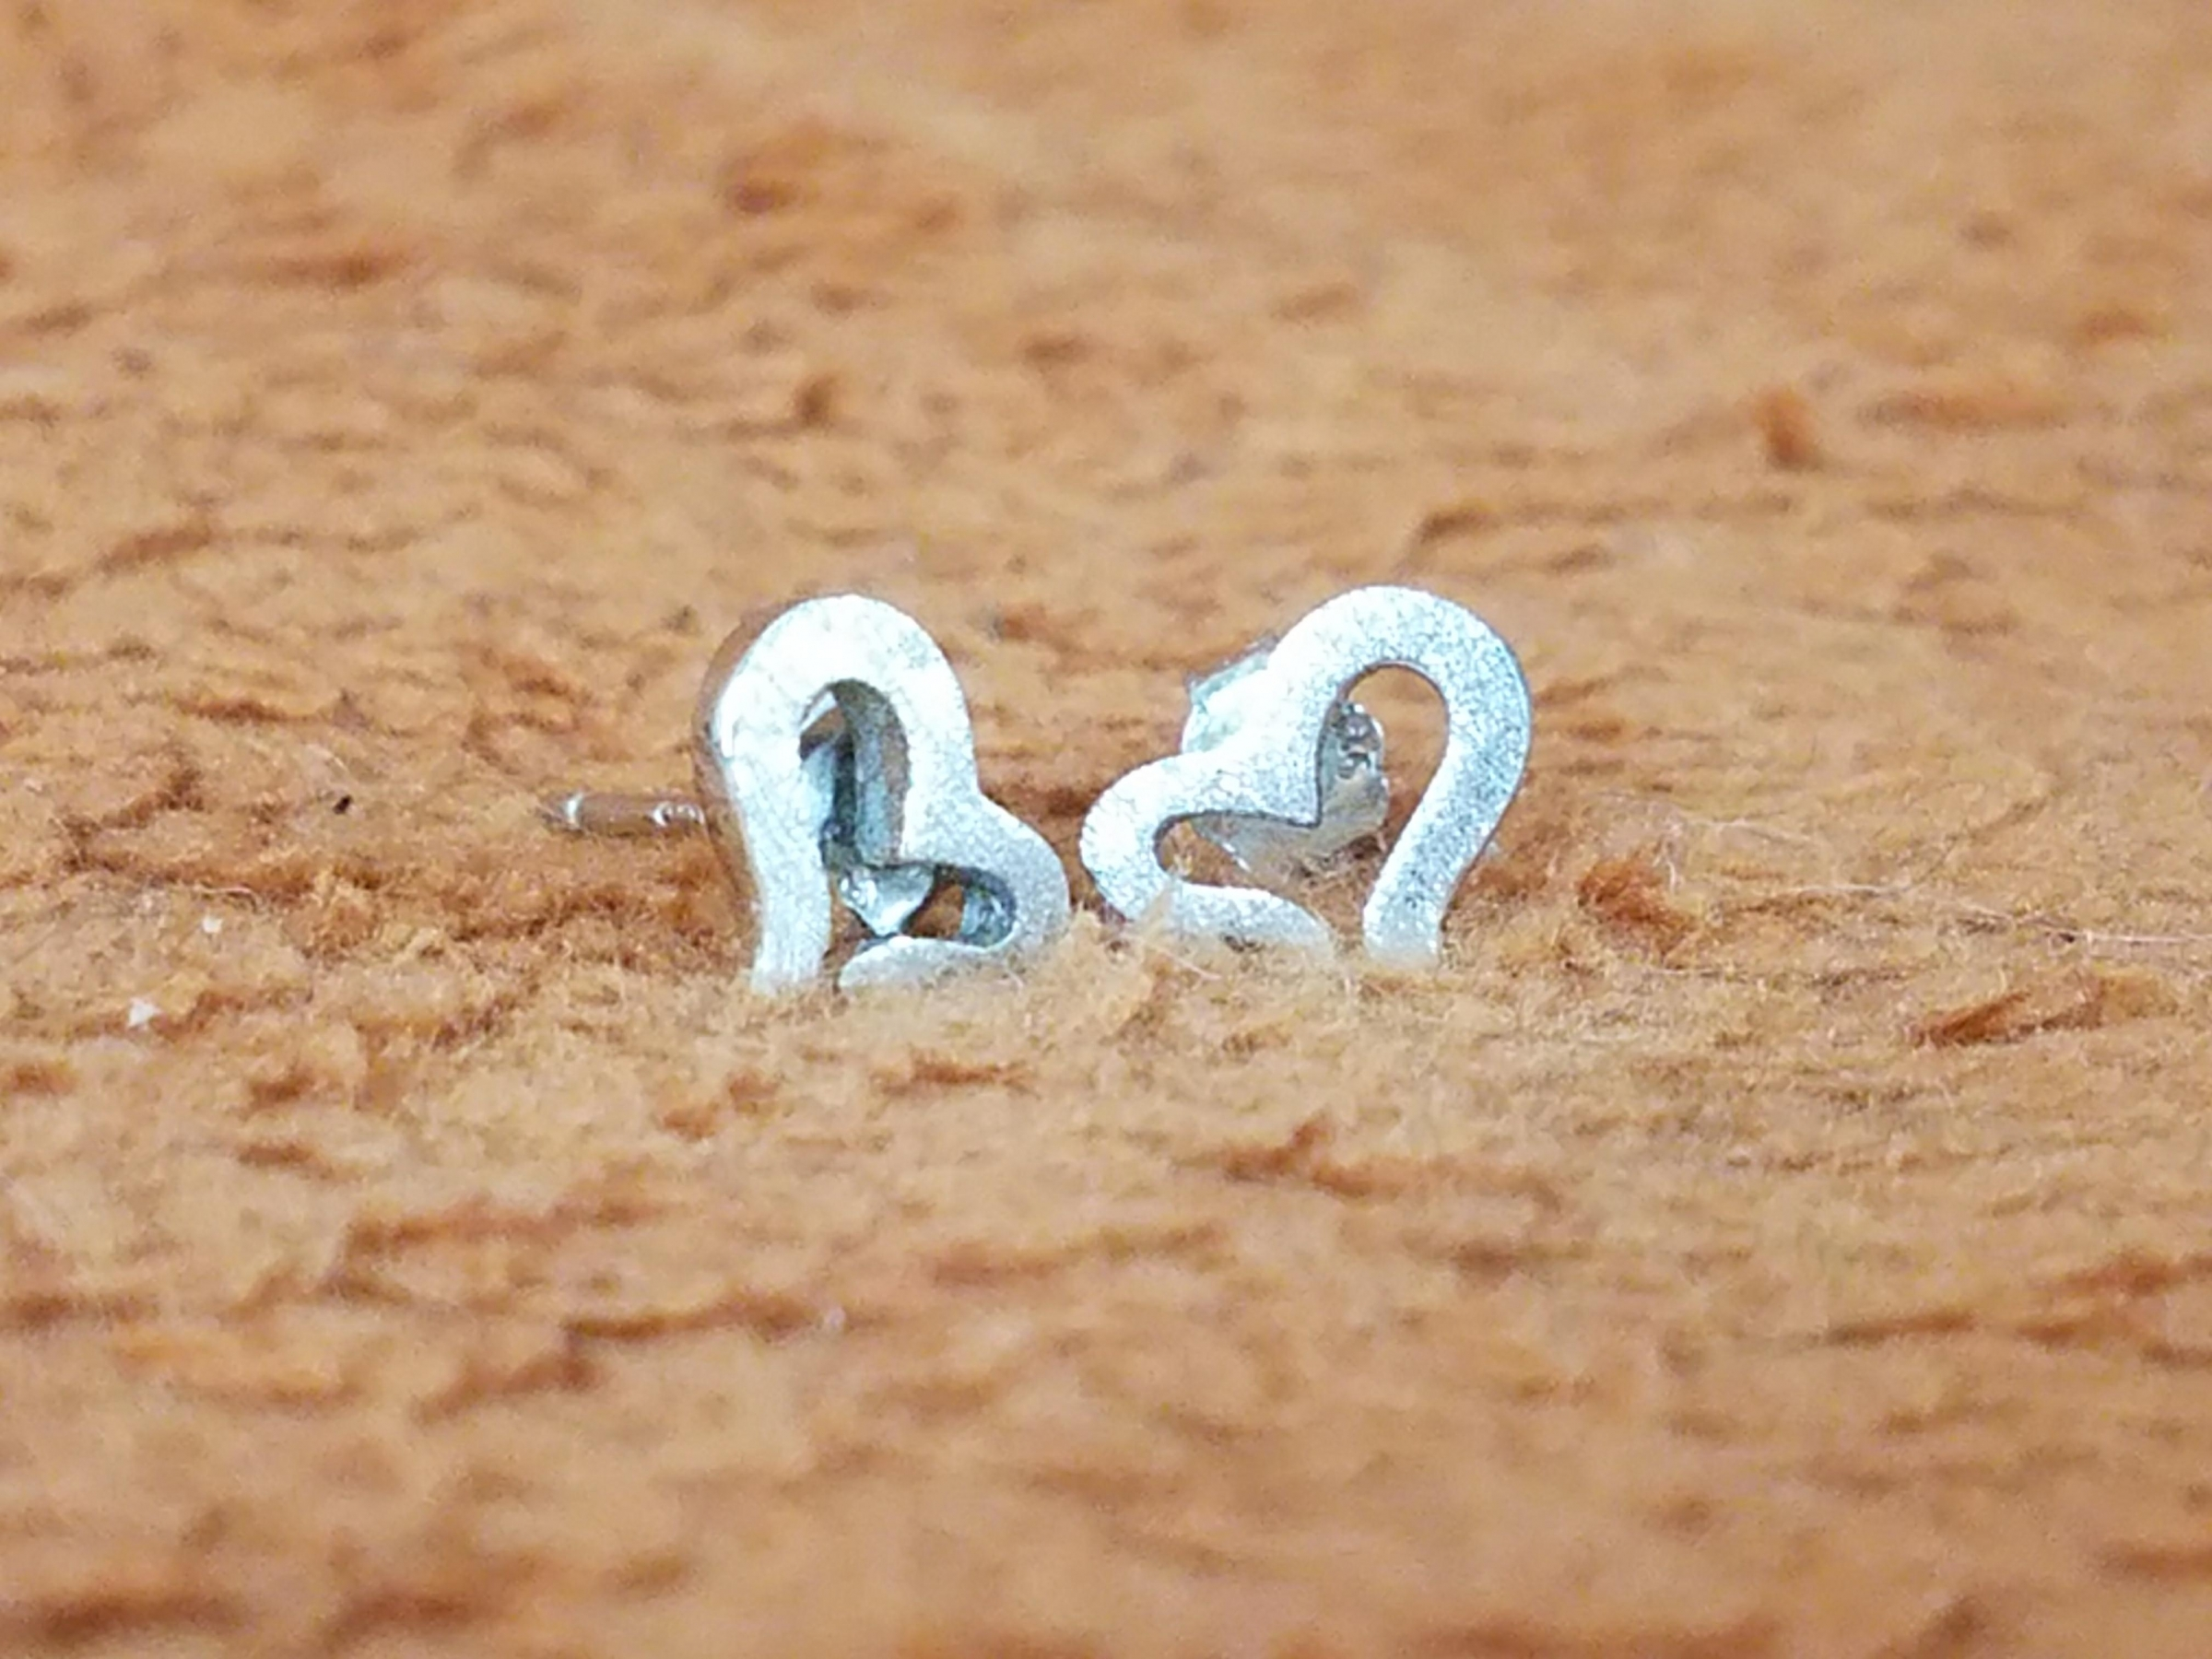 Spoil the special ladies in your life, shiny silver, .925 stamped, Hypoallergenic, gorgeous heart stud earrings that come in a nice pouch, perfect for gift-giving!